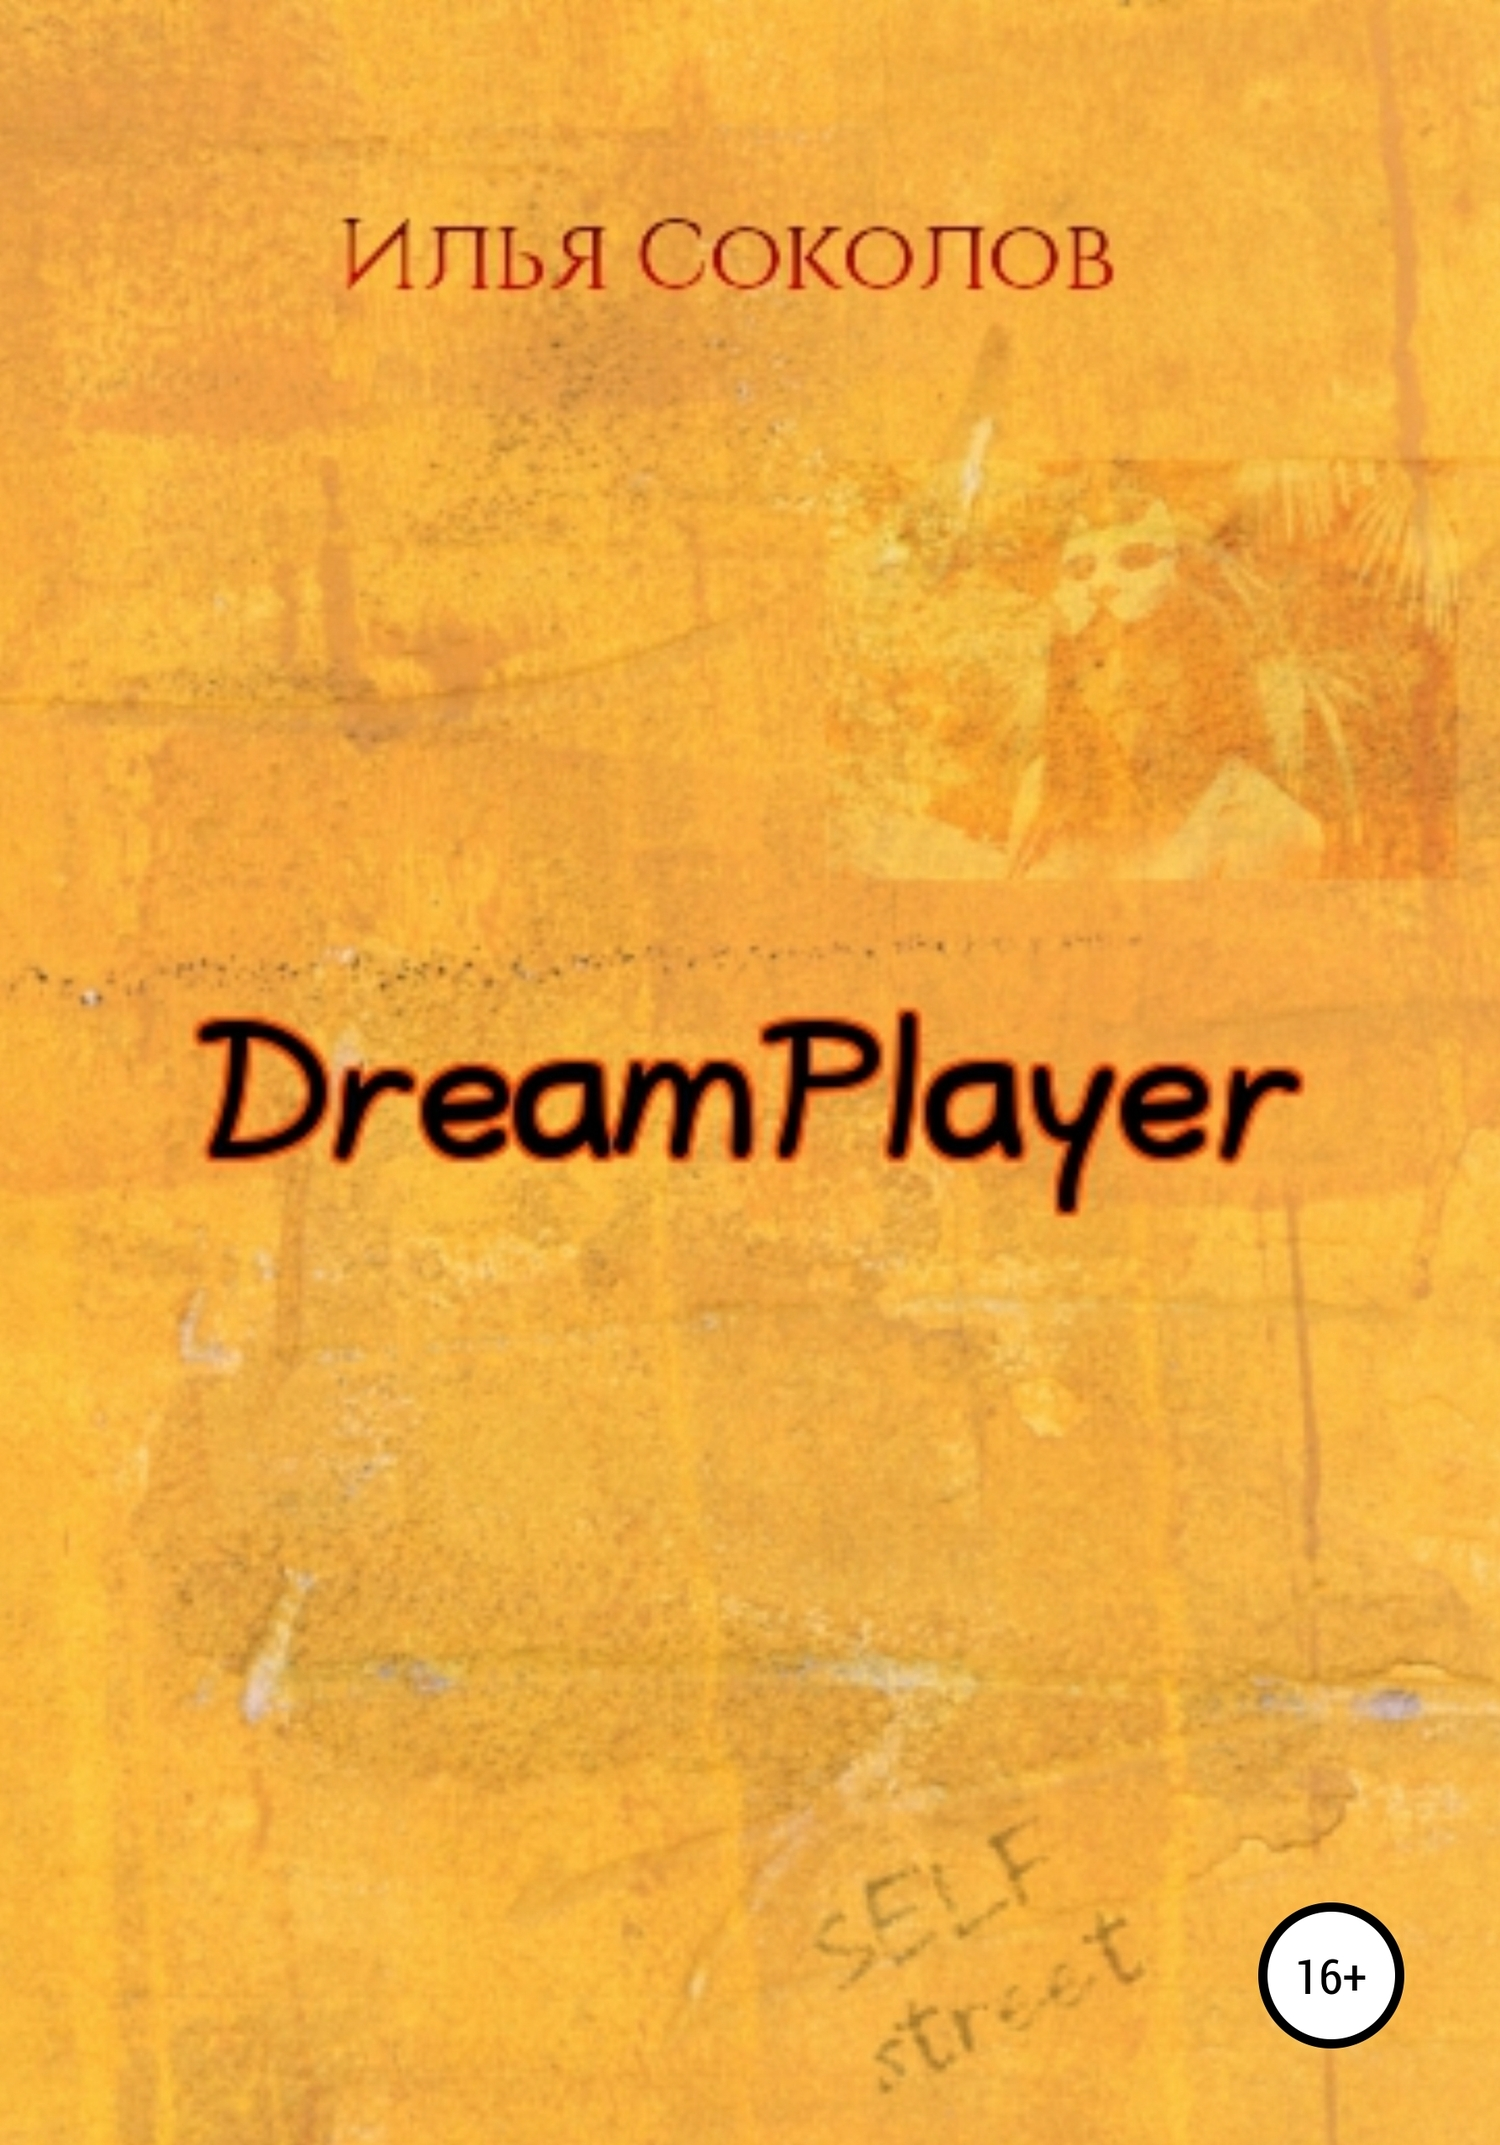 ��������� ������ ����� DreamPlayer ������ ���� �������